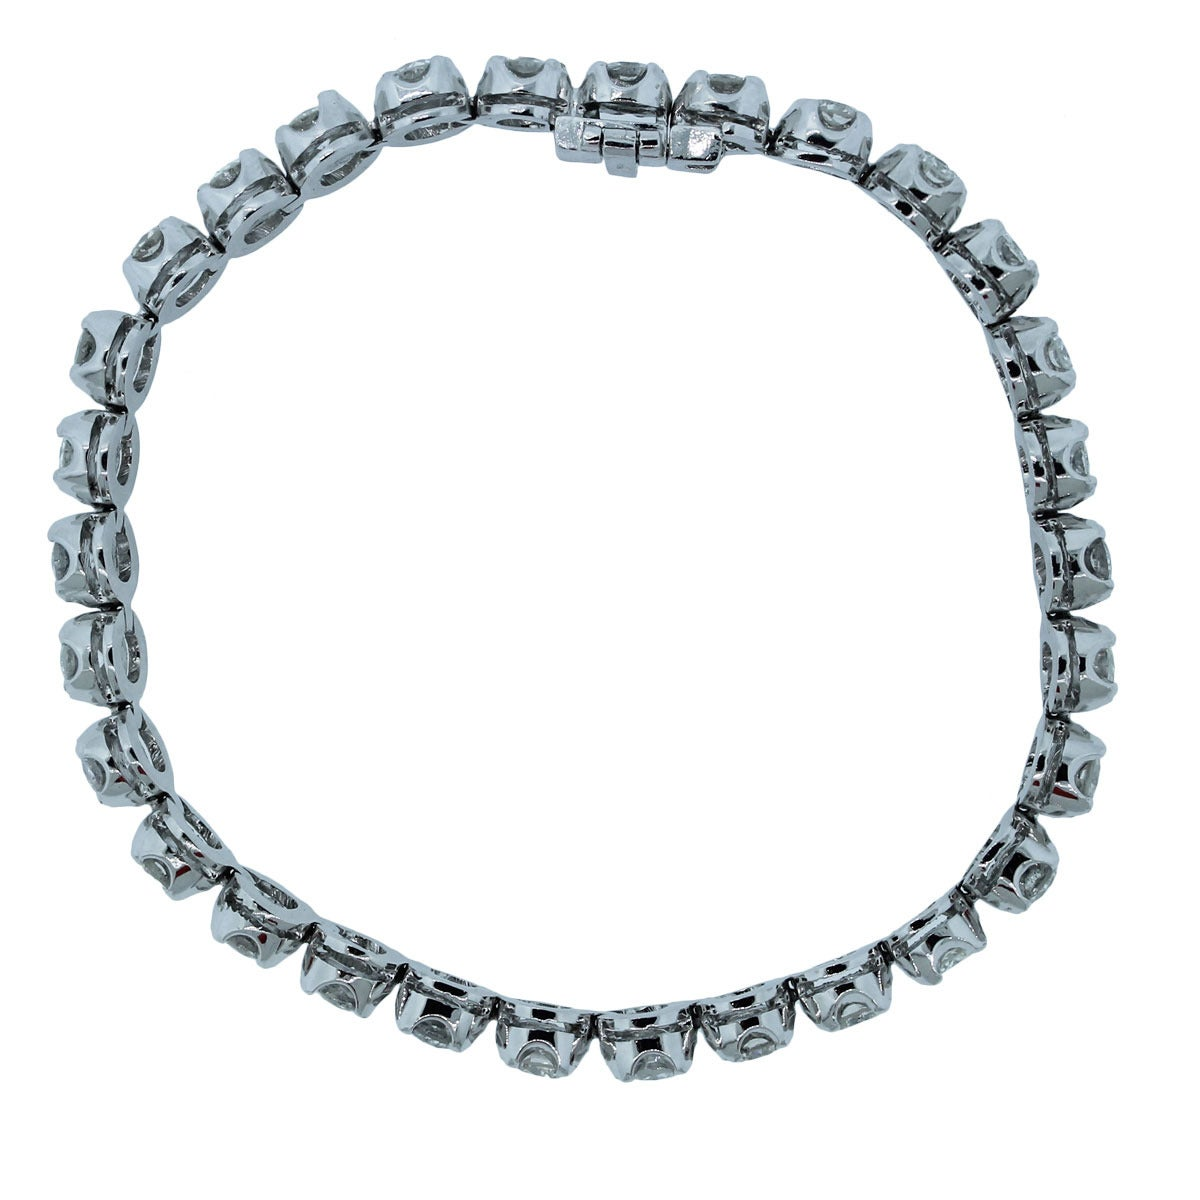 8 10 Carat Diamond Gold Tennis Bracelet At 1stdibs